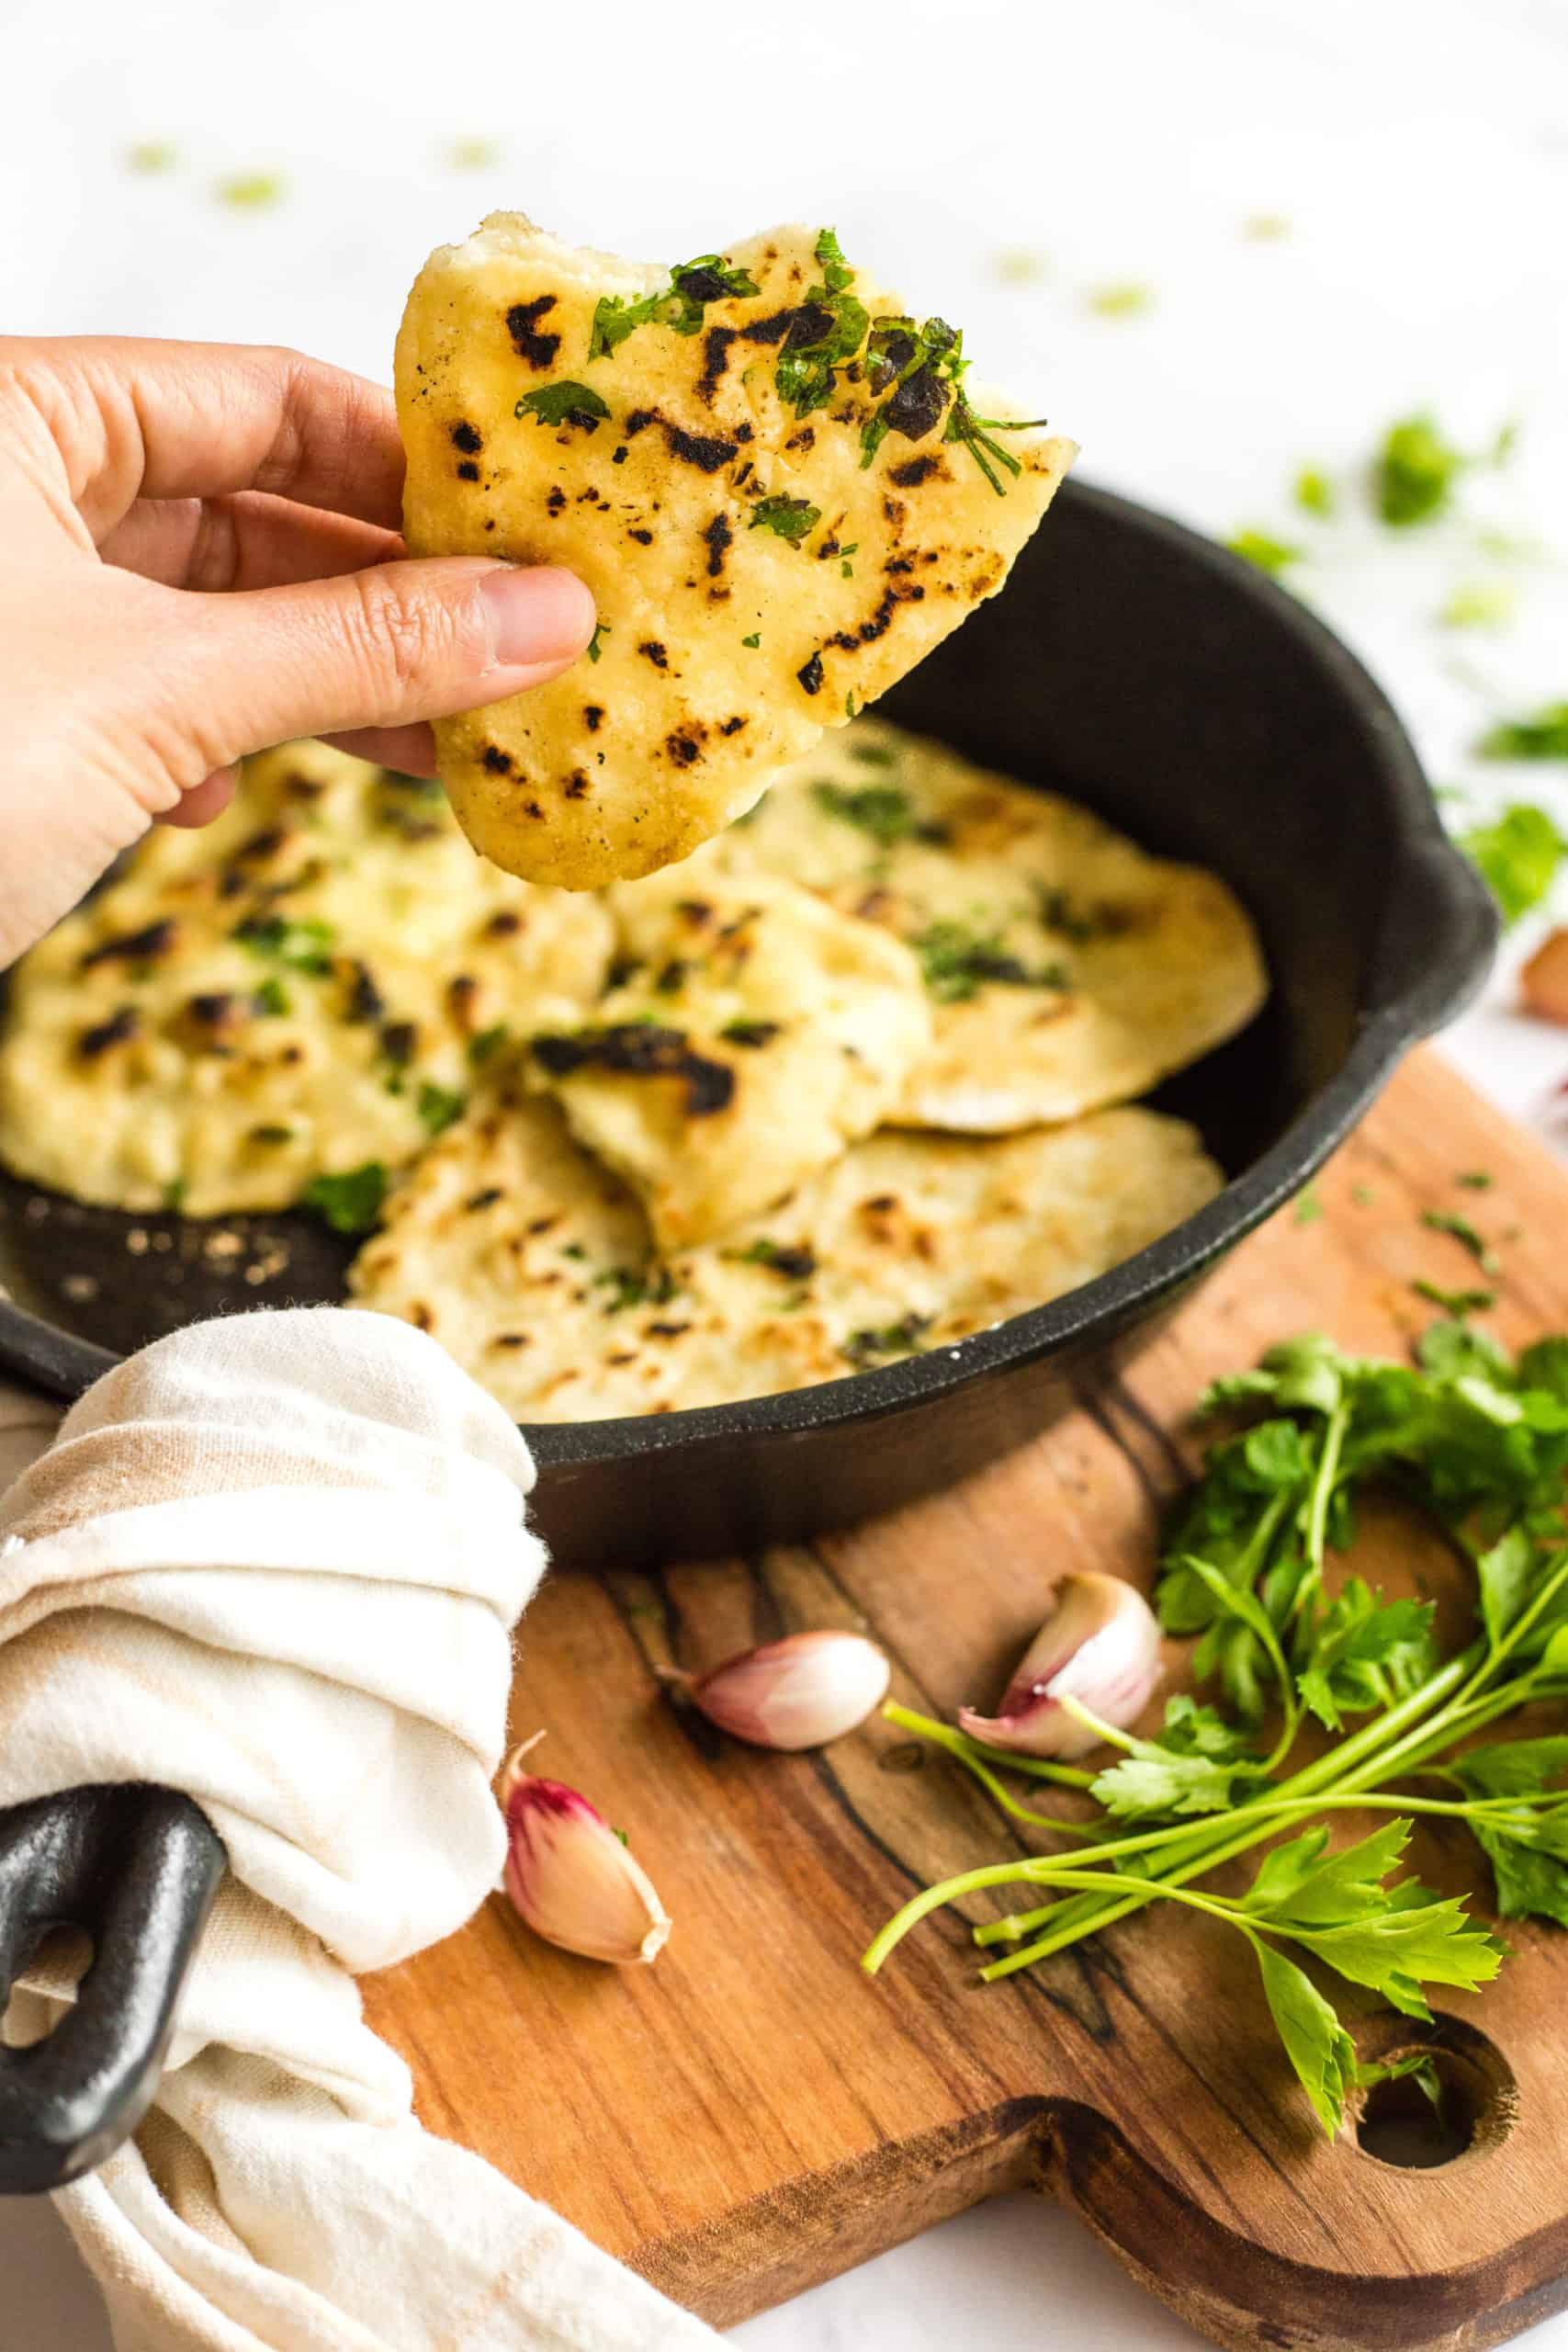 Gluten-free naan bread in a cast iron skillet